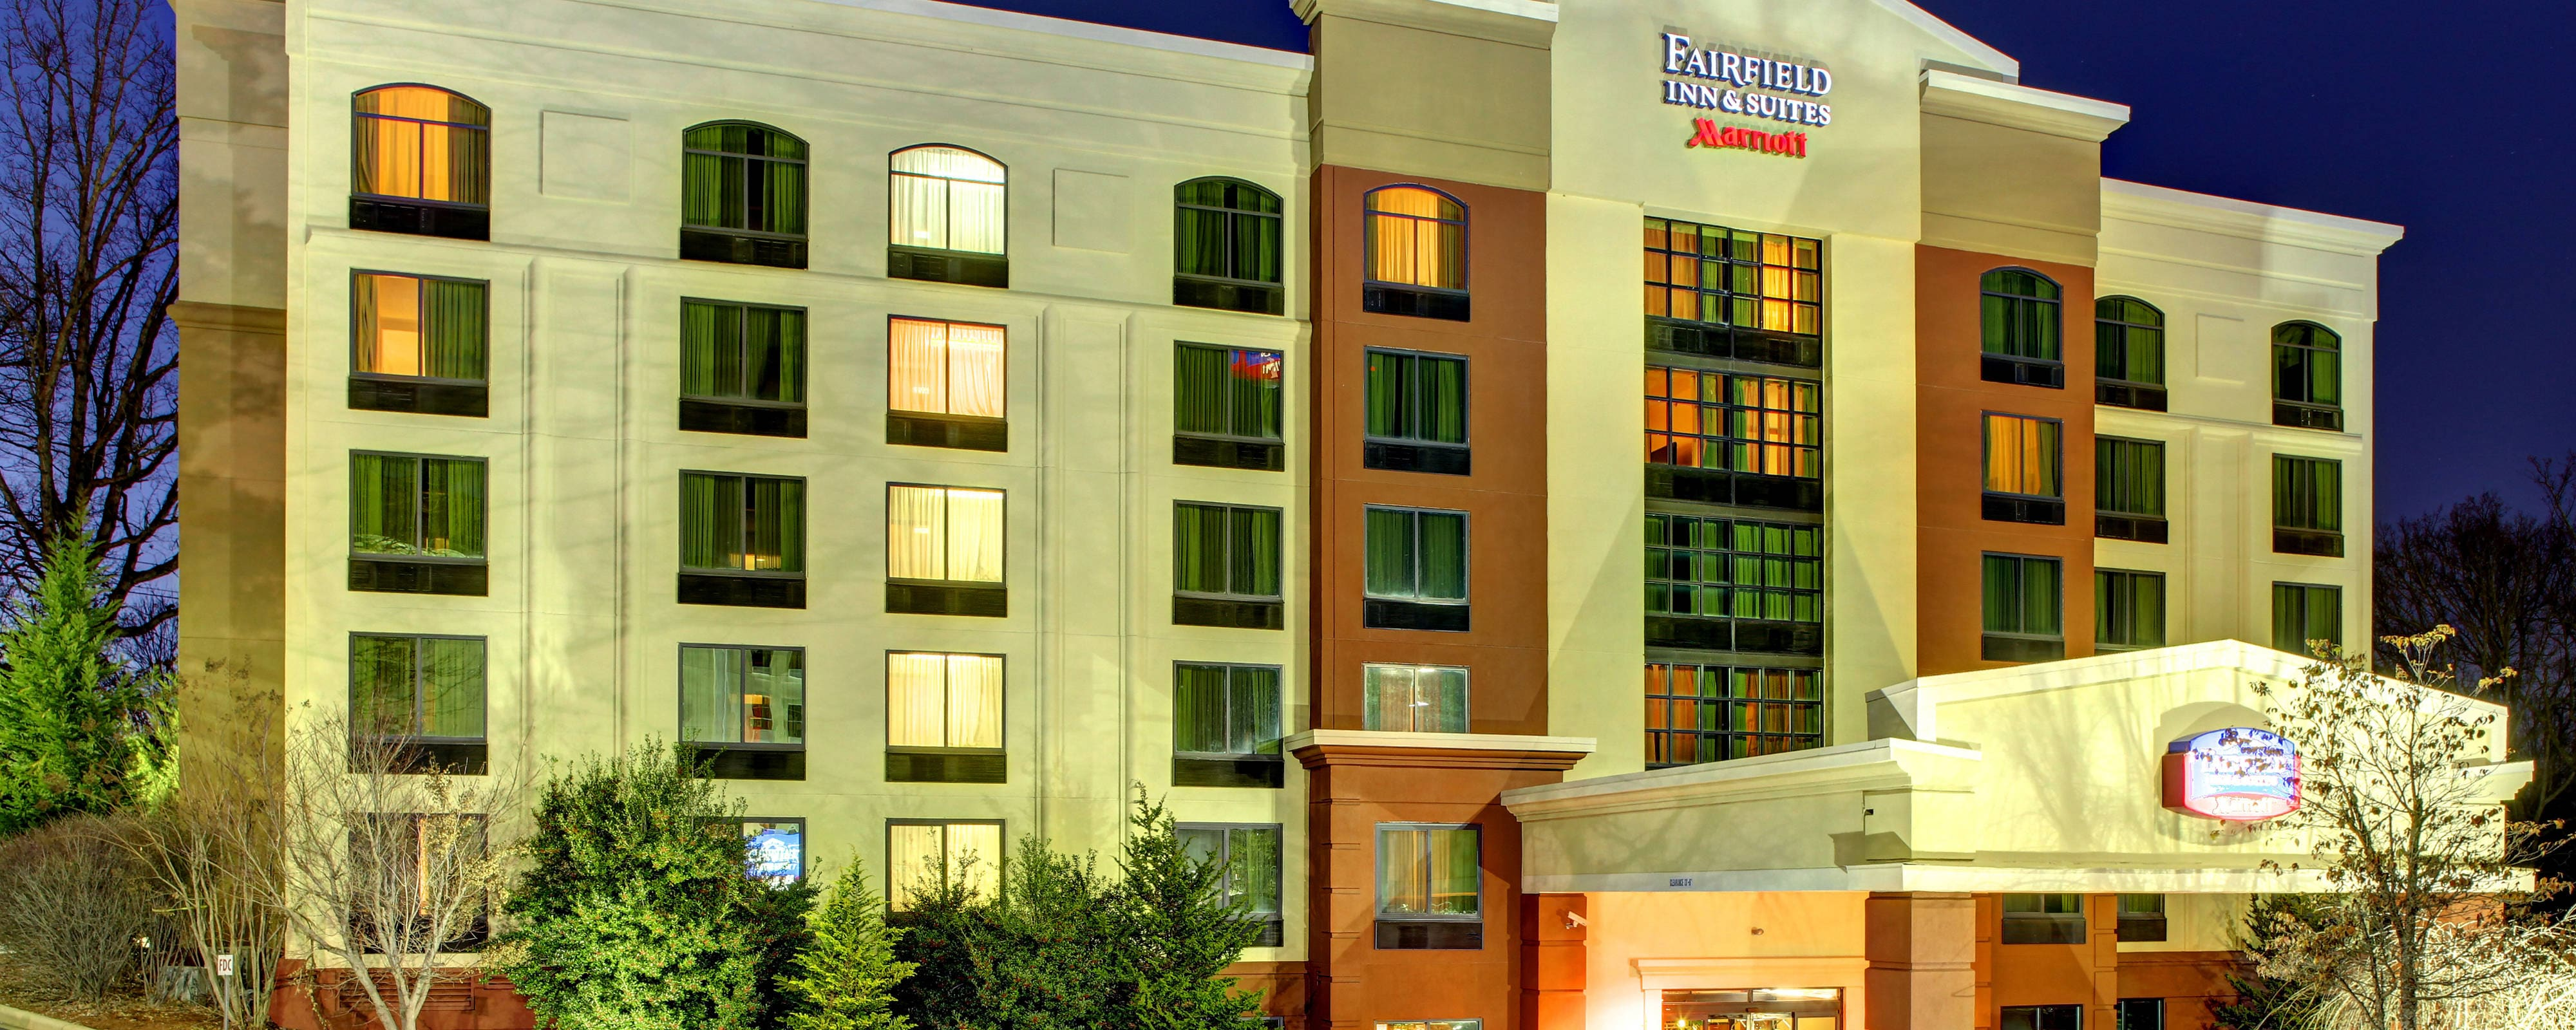 Maps and directions to Fairfield Inn & Suites Asheville/Biltmore in Downtown Asheville Hotels Map on